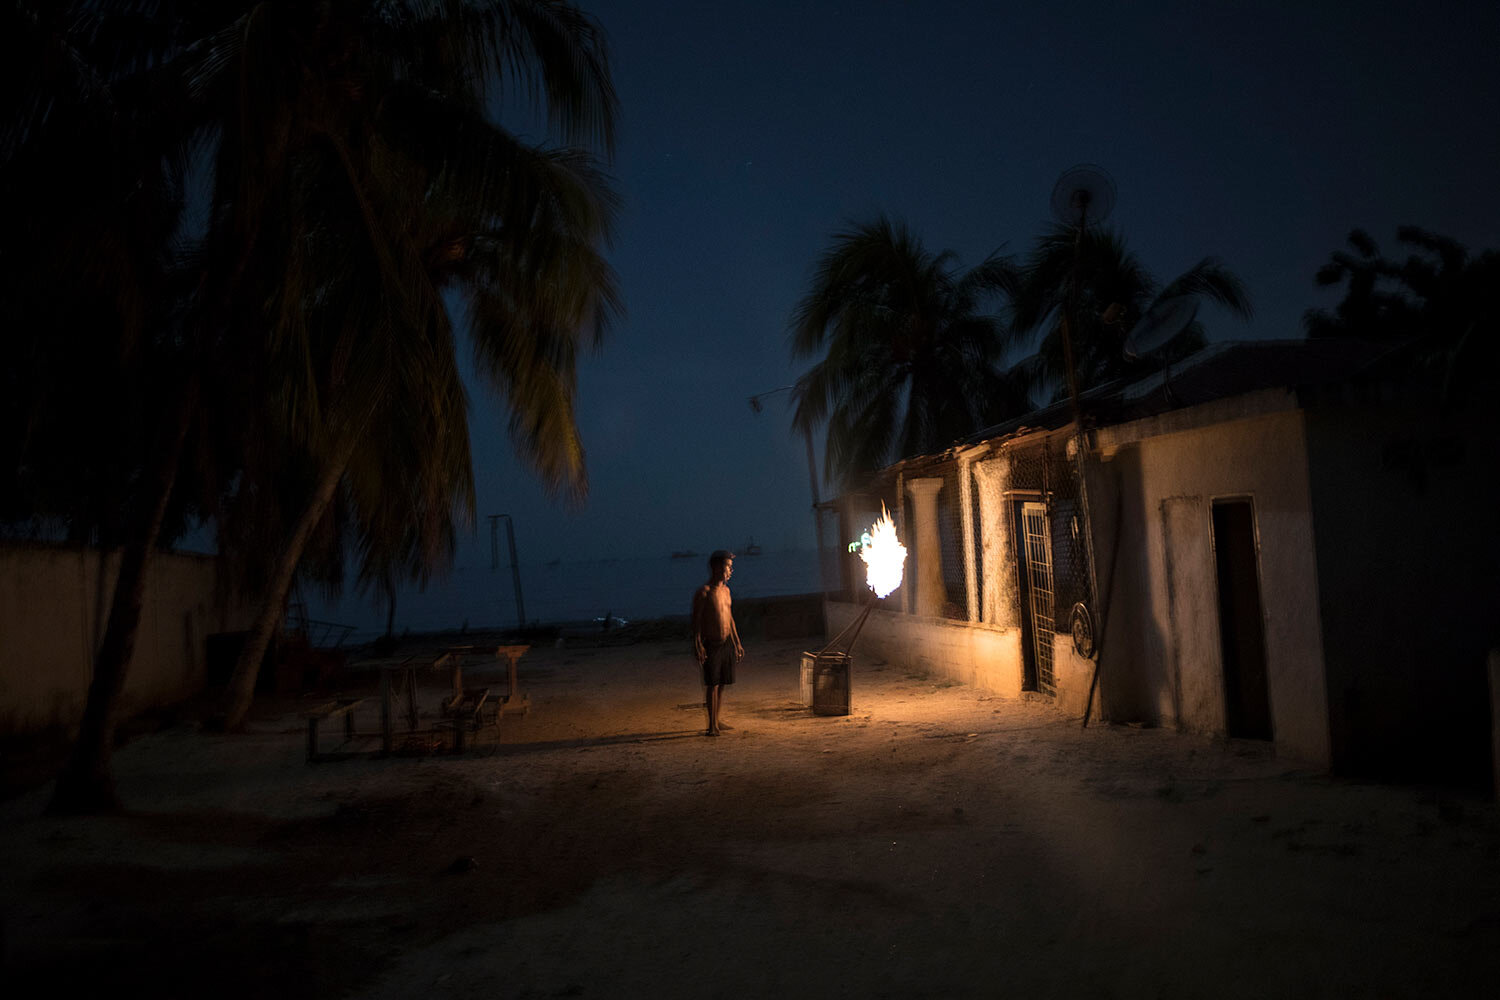 """During a blackout, a man is illuminated by torches made out of crude oil, and known as """"mechurrios,"""" referring to the flares that burn excess gas on oil wells, in Cabimas, Venezuela, July 11, 2019. (AP Photo/Rodrigo Abd)"""